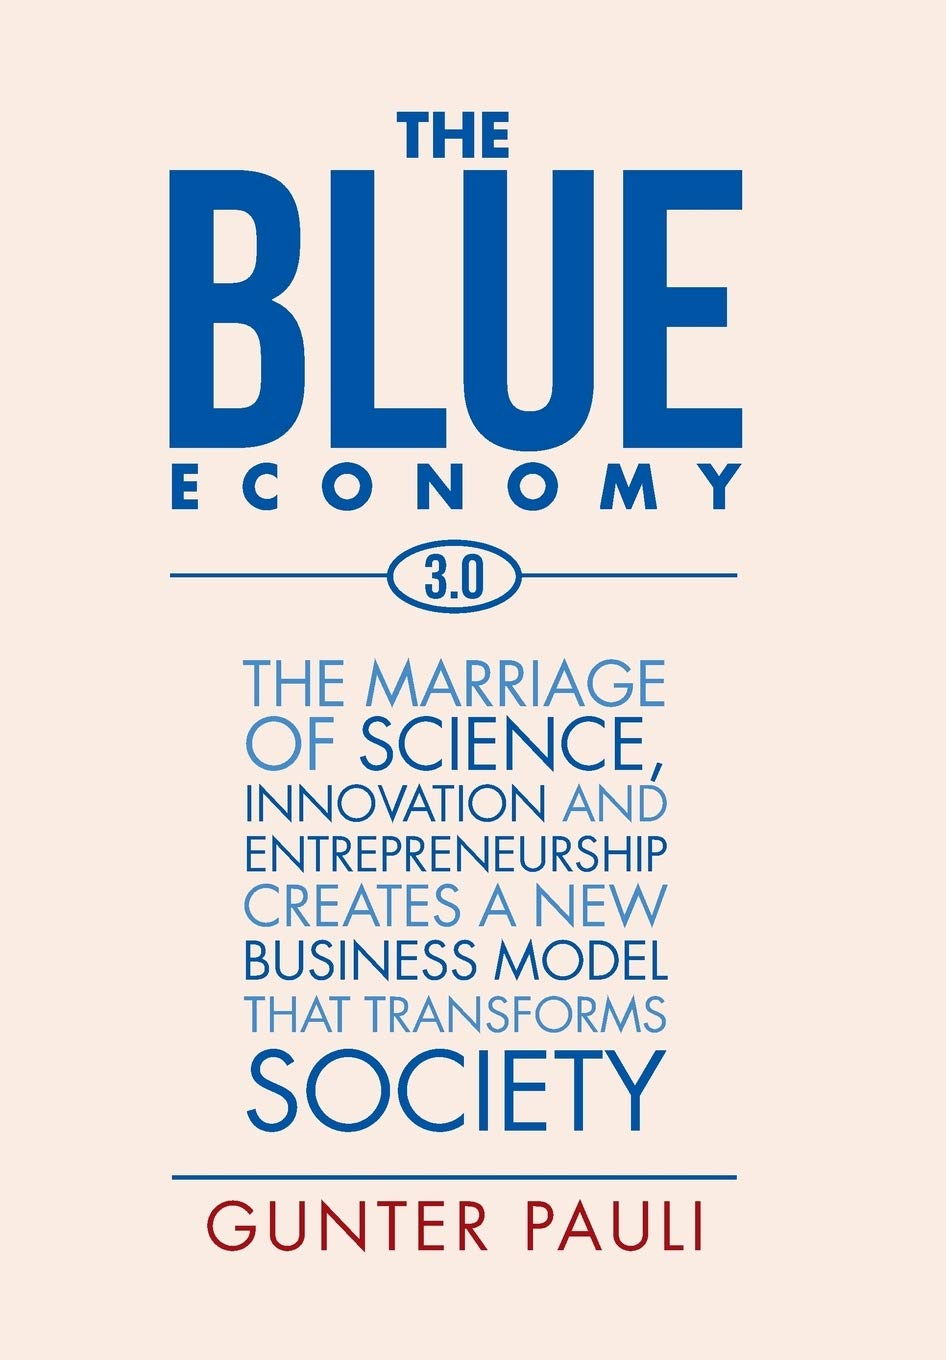 The Blue Economy 3.0: The marriage of science, innovation and entrepreneurship creates a new business model that transforms society.